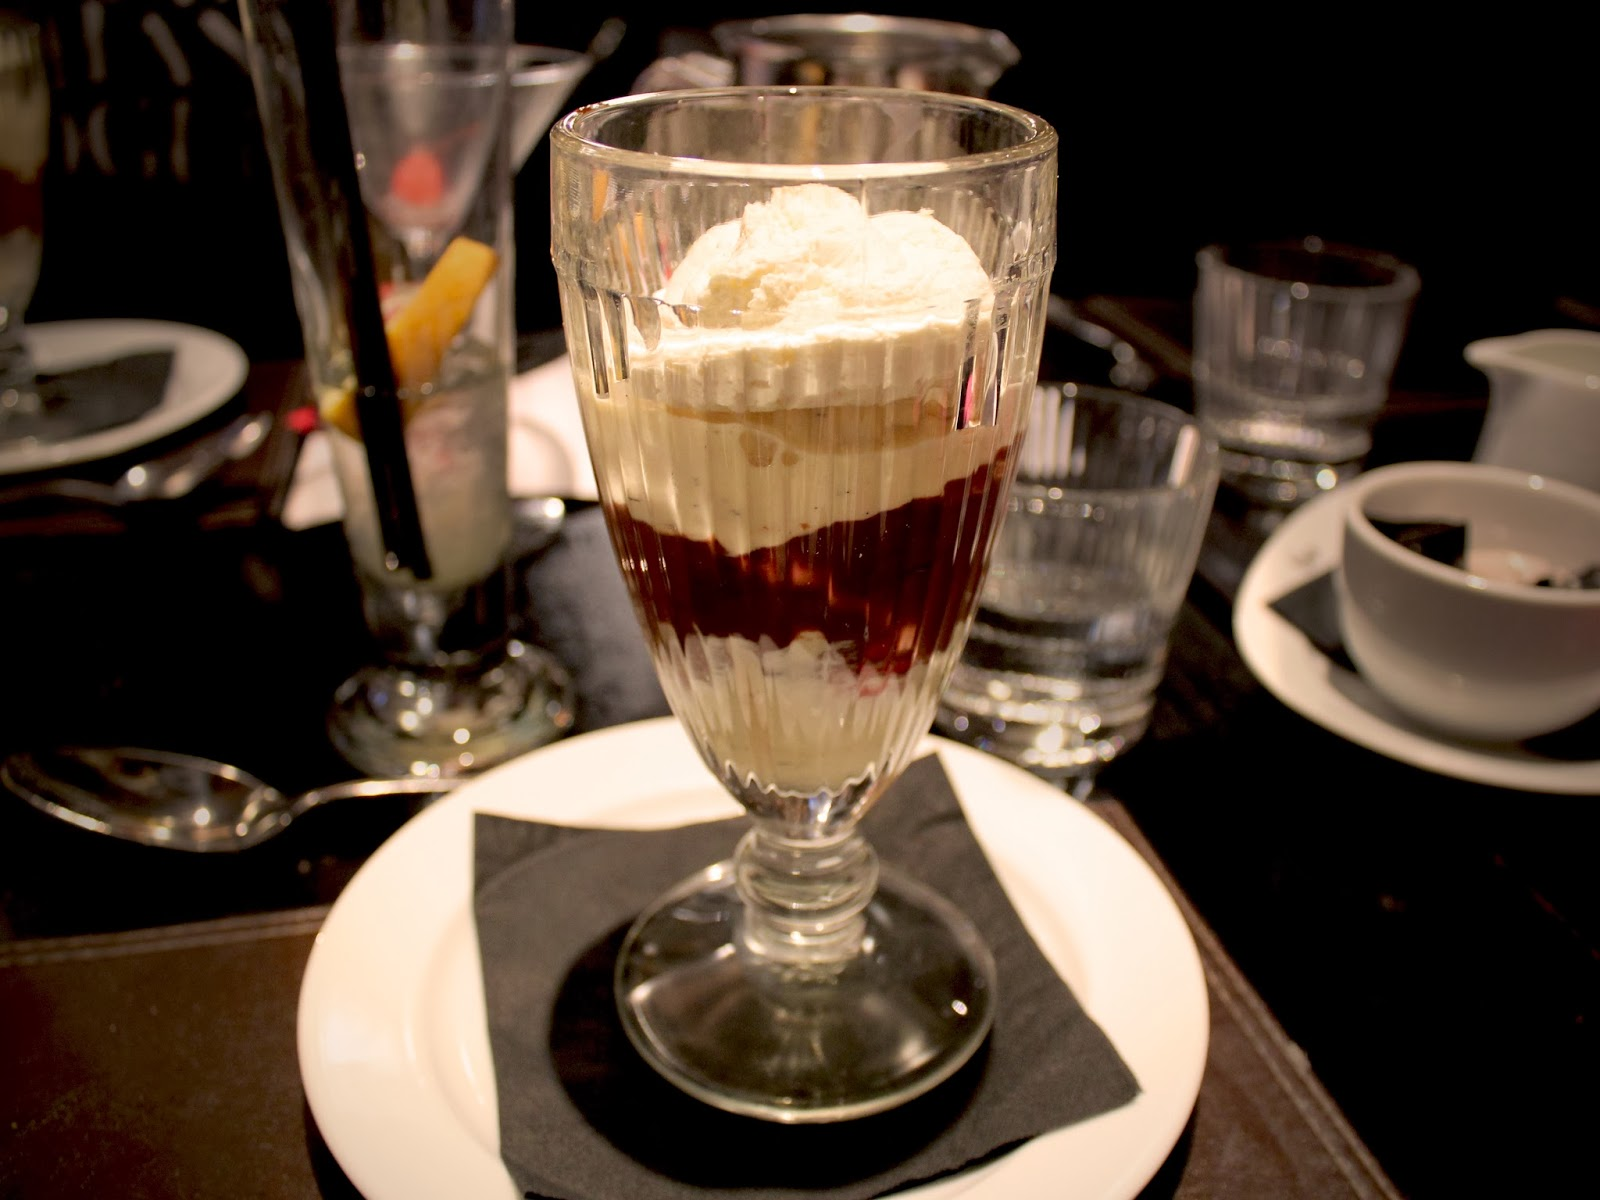 Ice Cream Sundae at the Malmaison Hotel in Birmingham